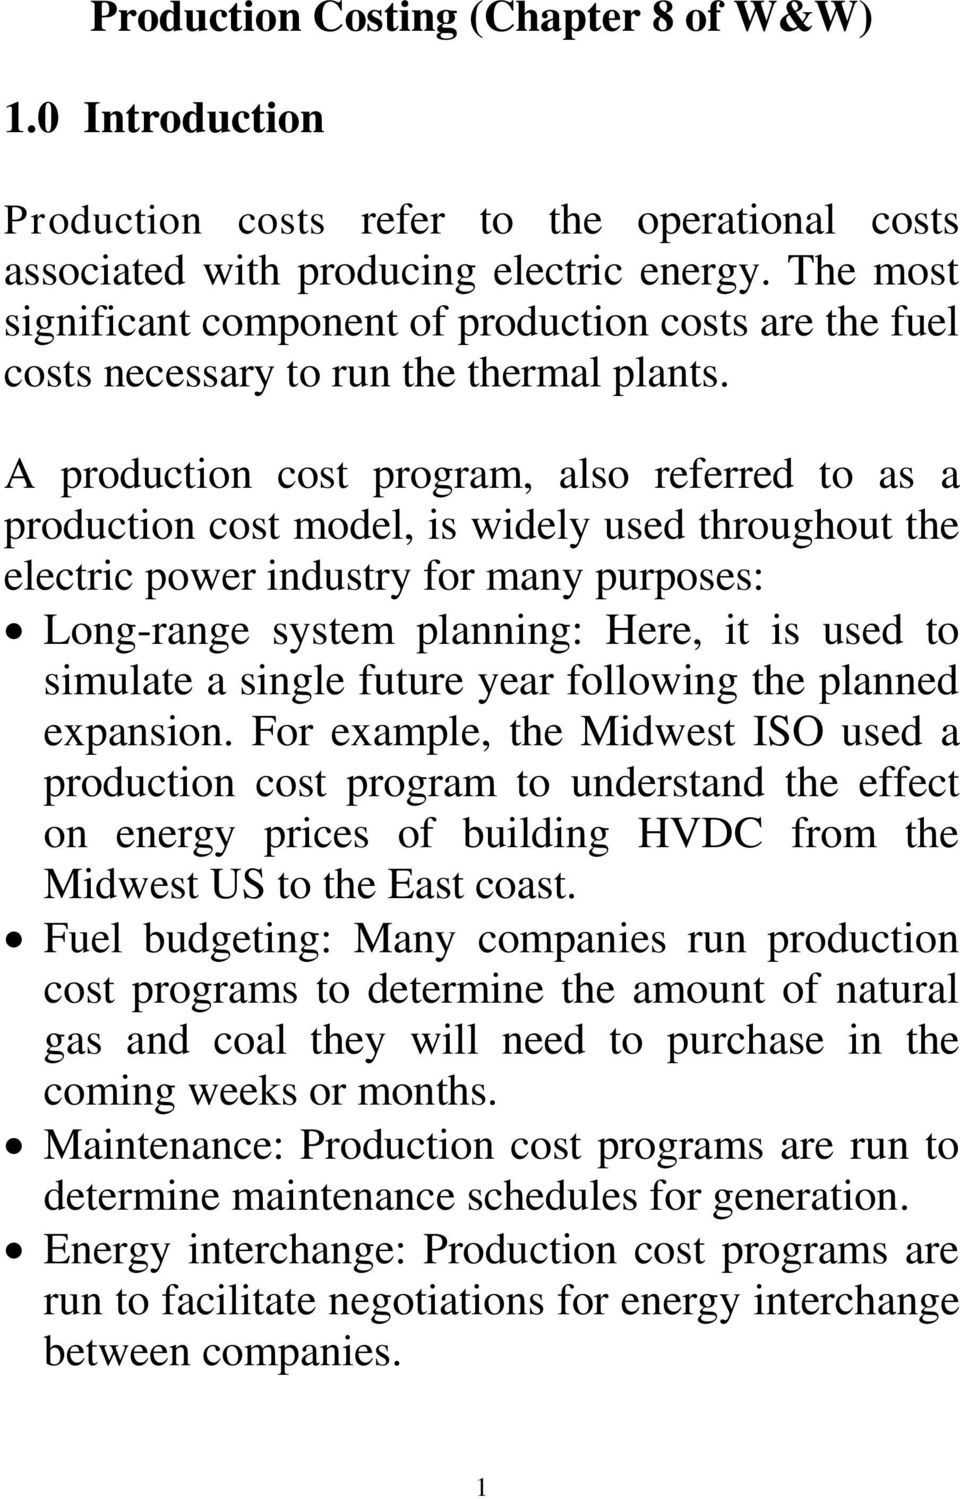 A production cost program, also rfrrd to as a production cost modl, is widly usd throughout th lctric powr industry for many purposs: Long-rang systm planning: Hr, it is usd to simulat a singl futur